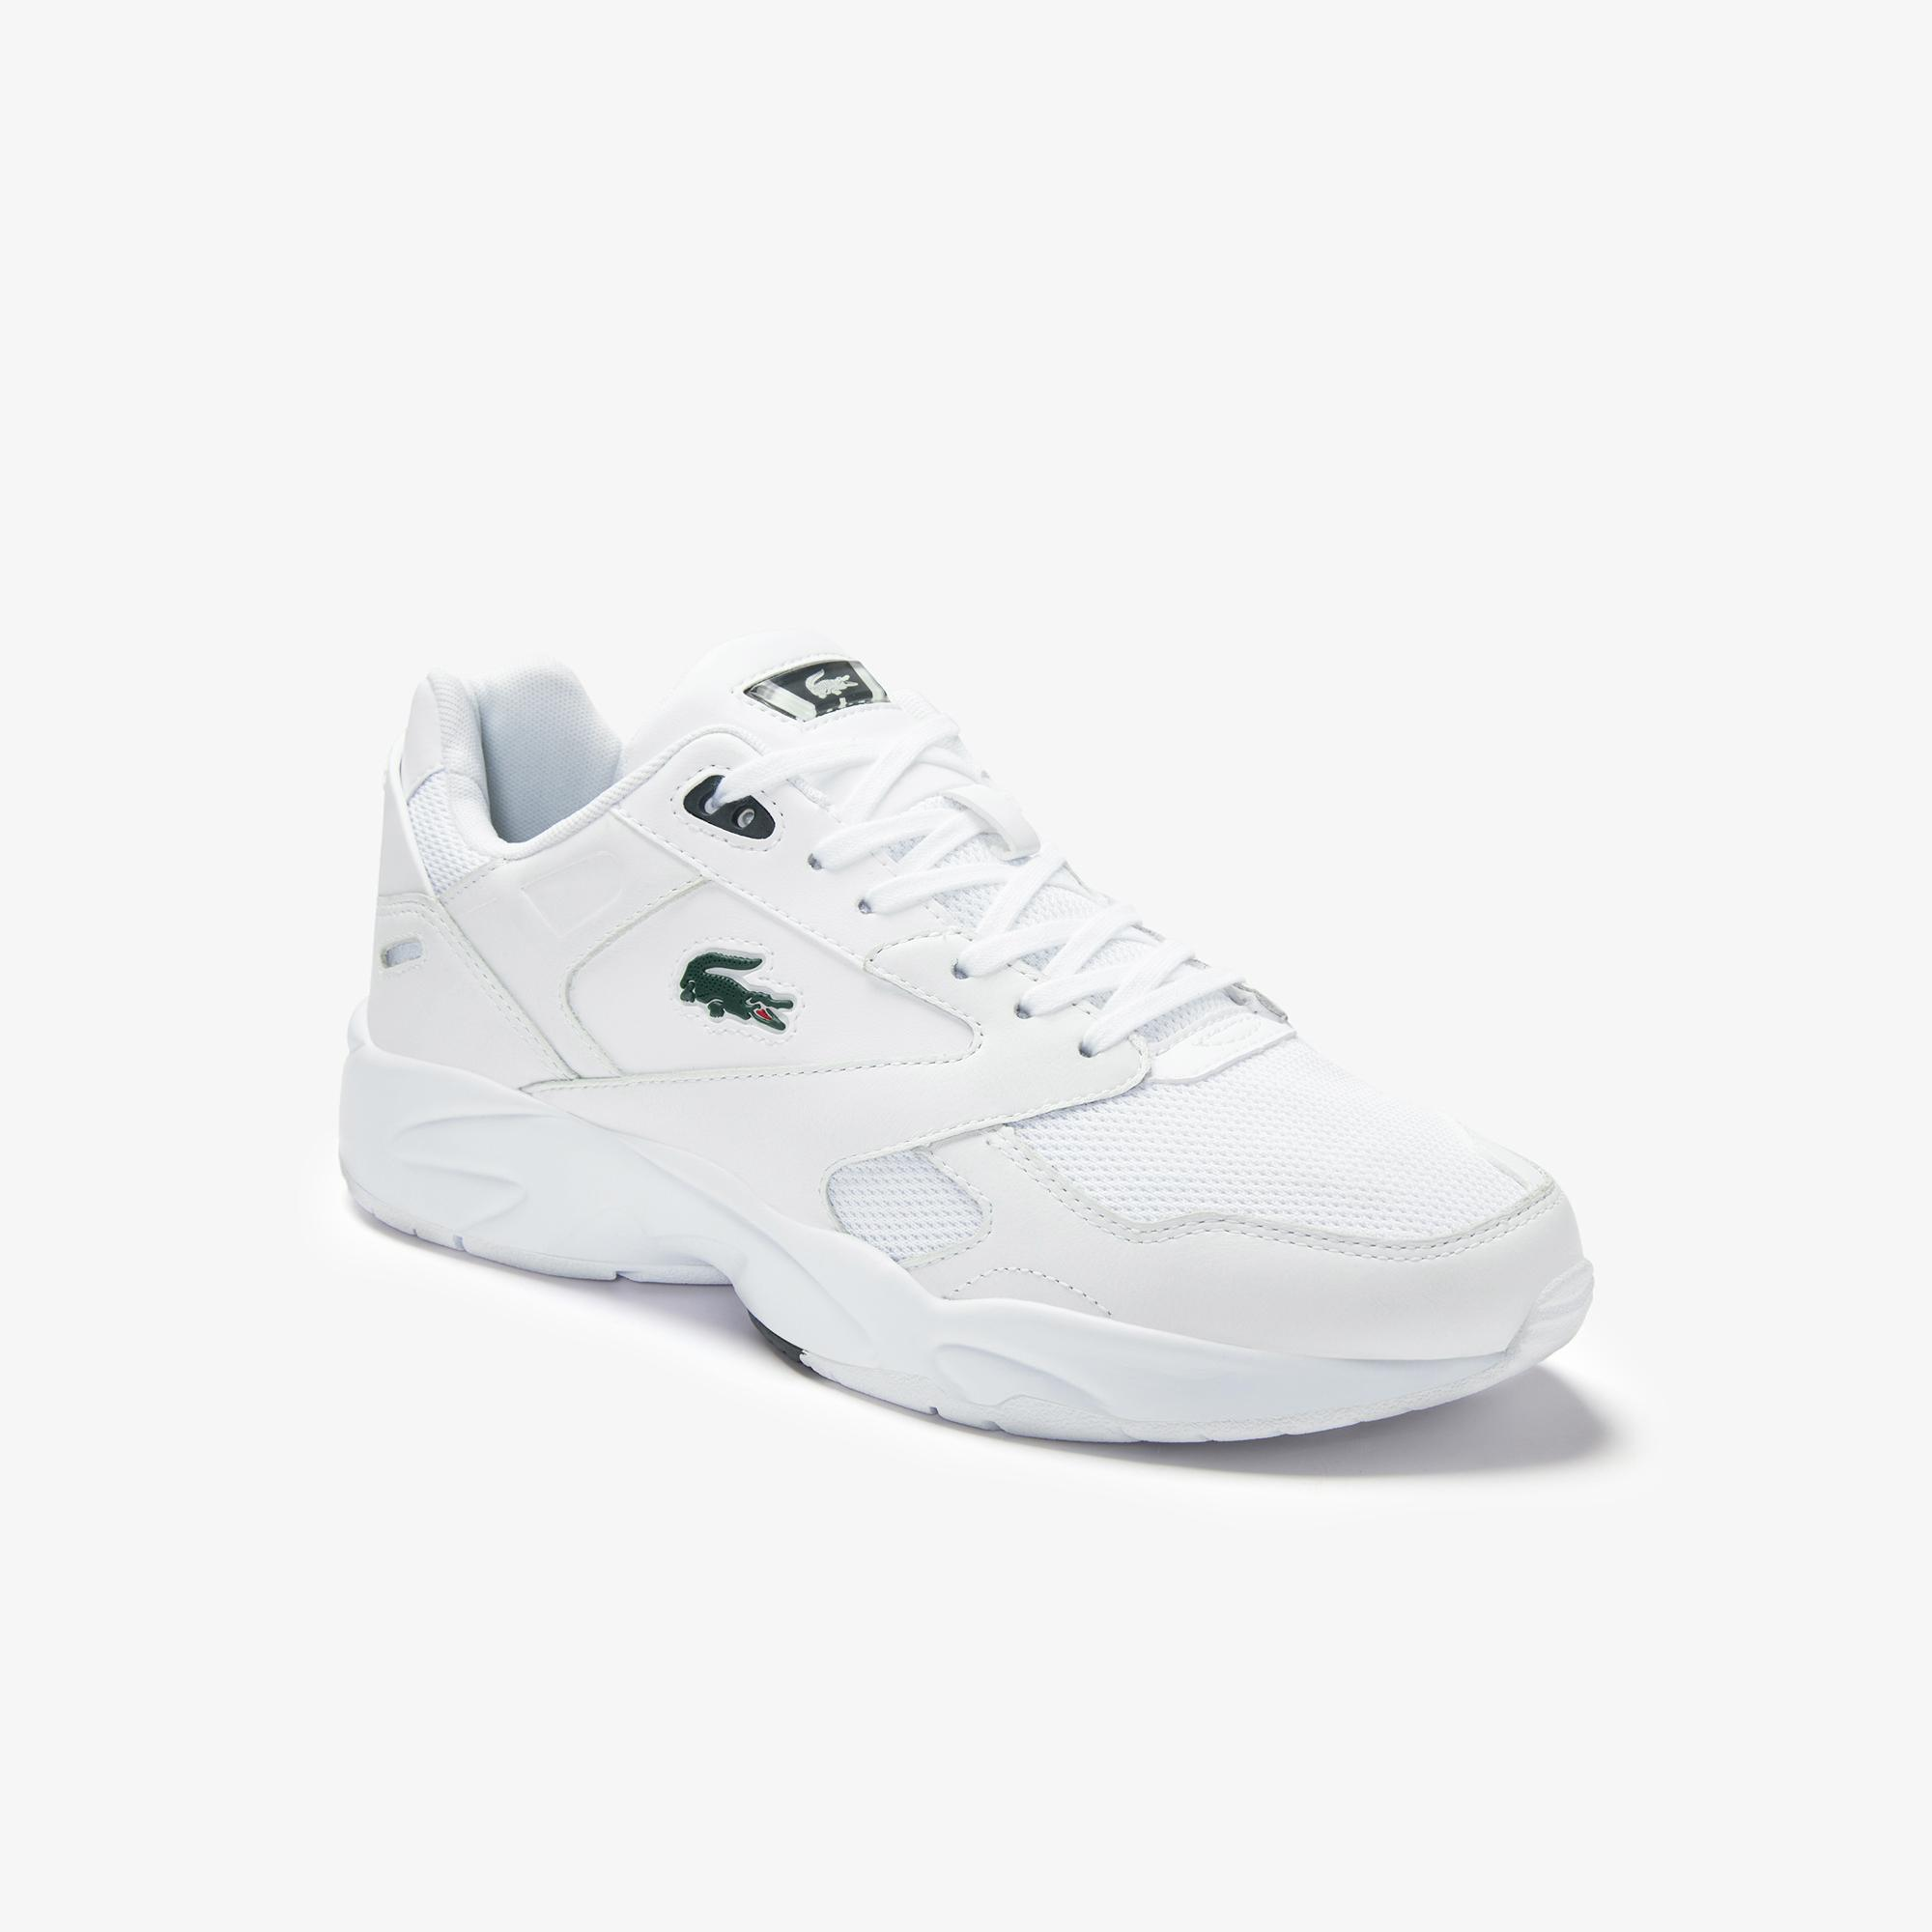 Lacoste Storm 96 sneakers, white, 42